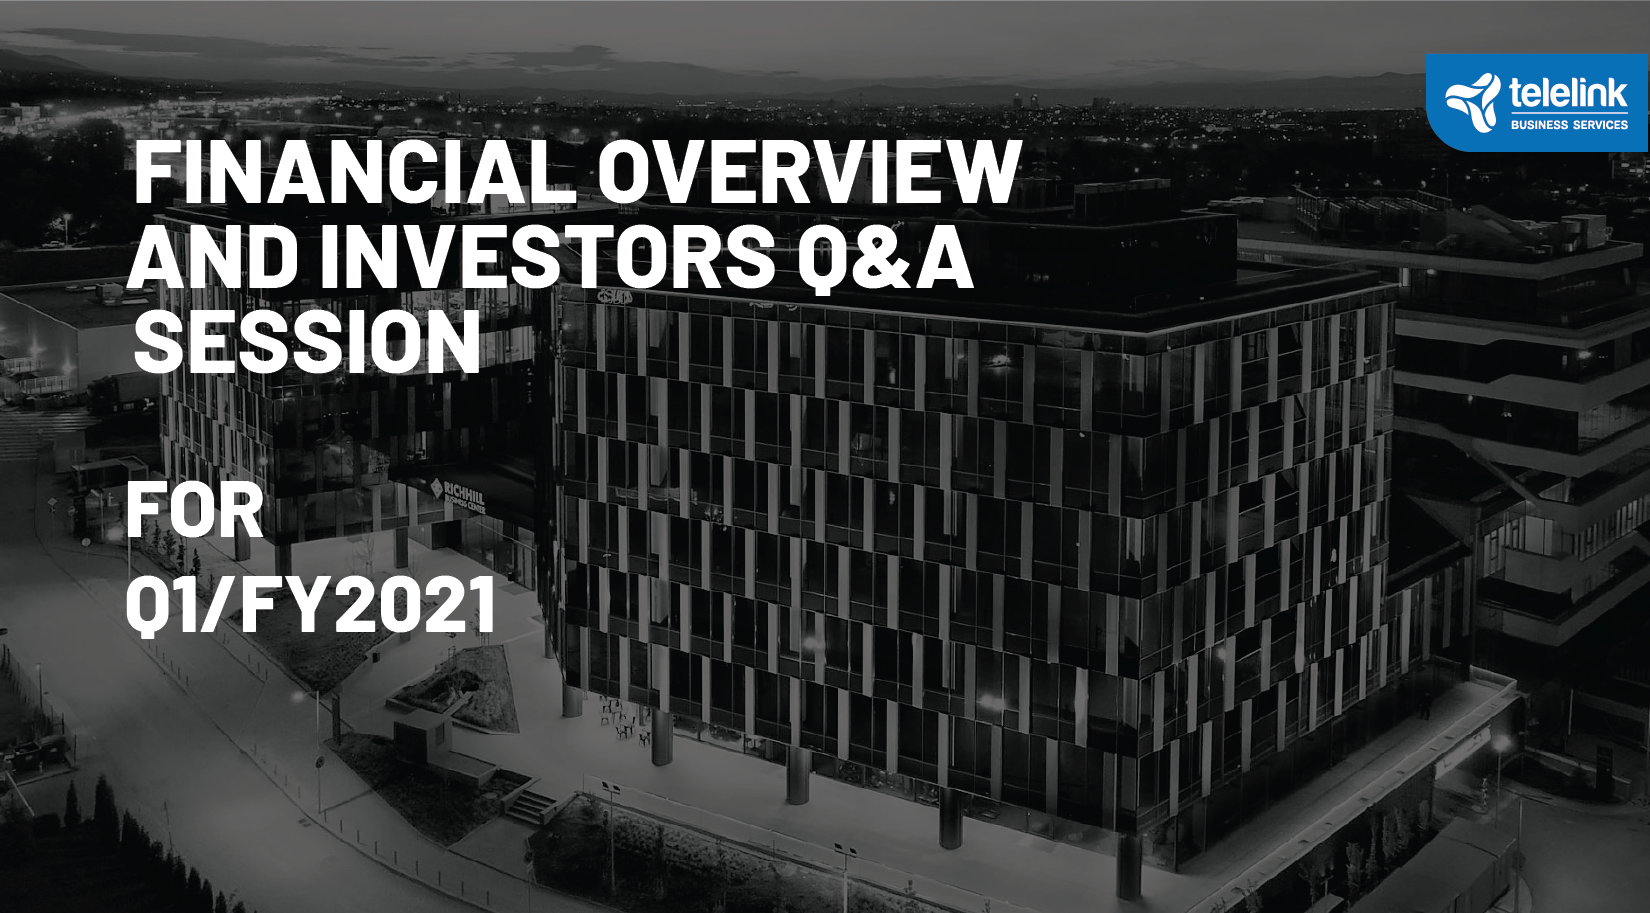 TBS Group: Q1/FY2021 Financial Overview and Investors Q&A